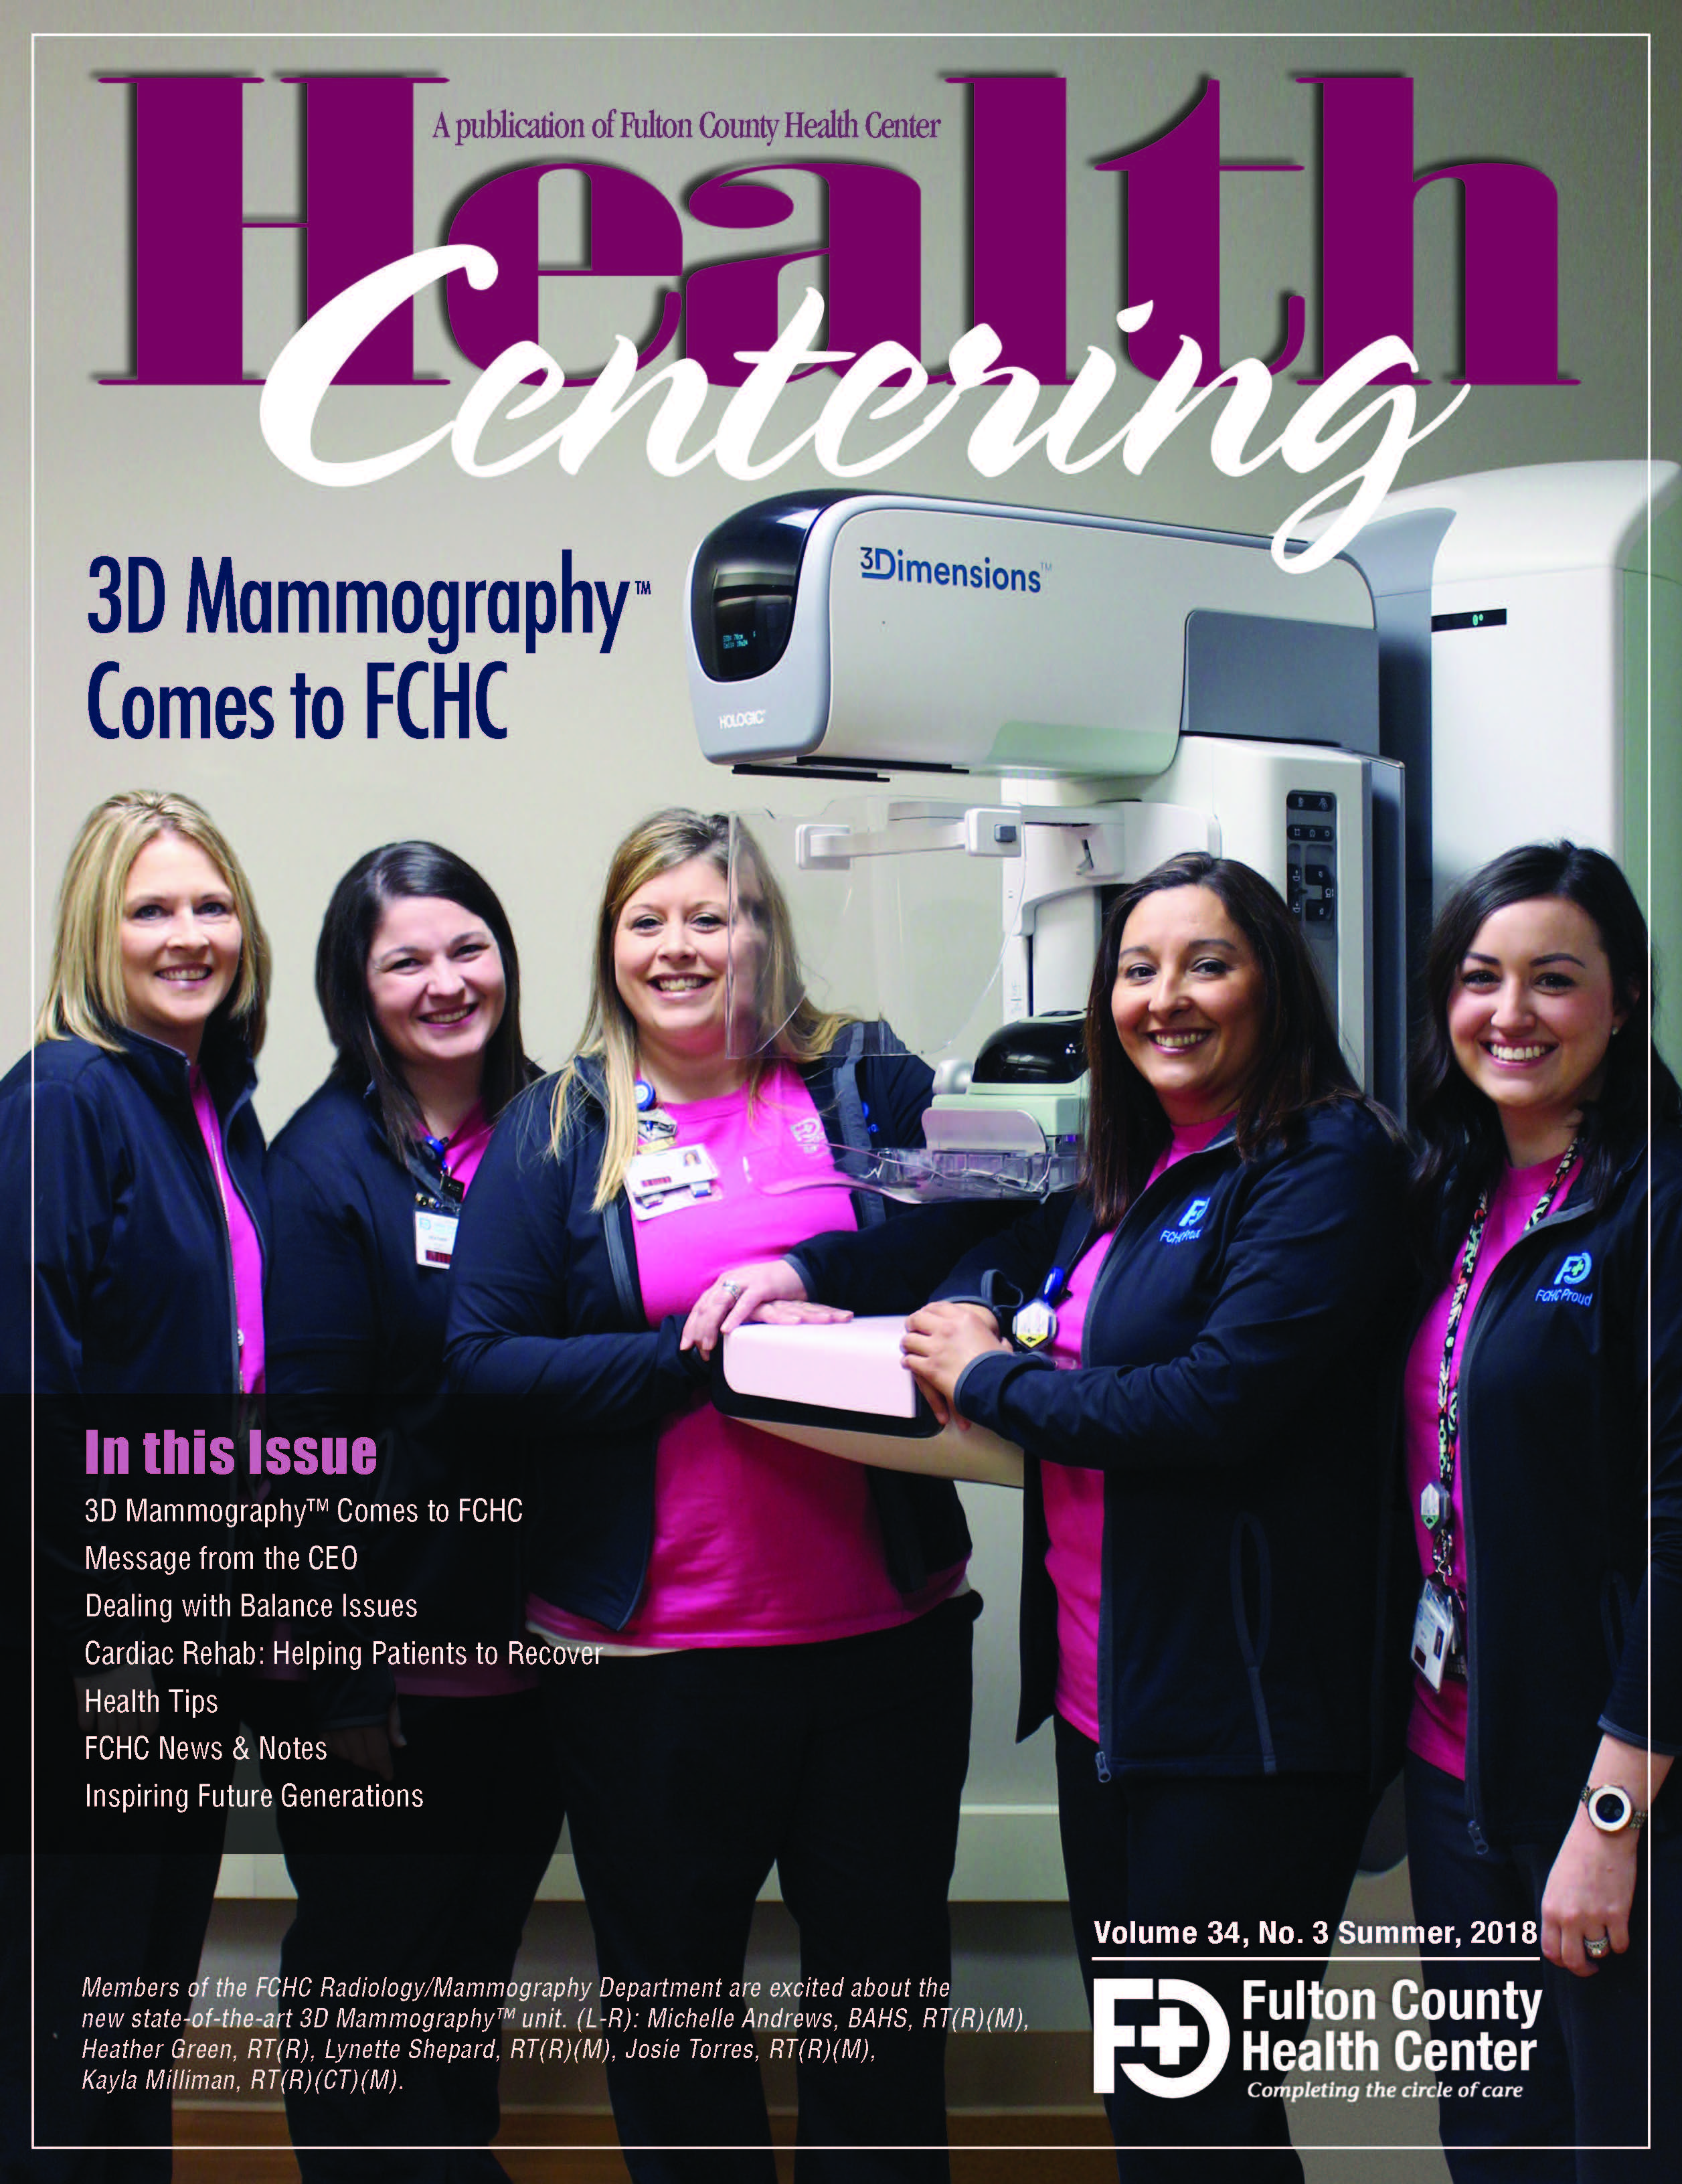 Fulton County Mammography Technology & Cancer Prevention